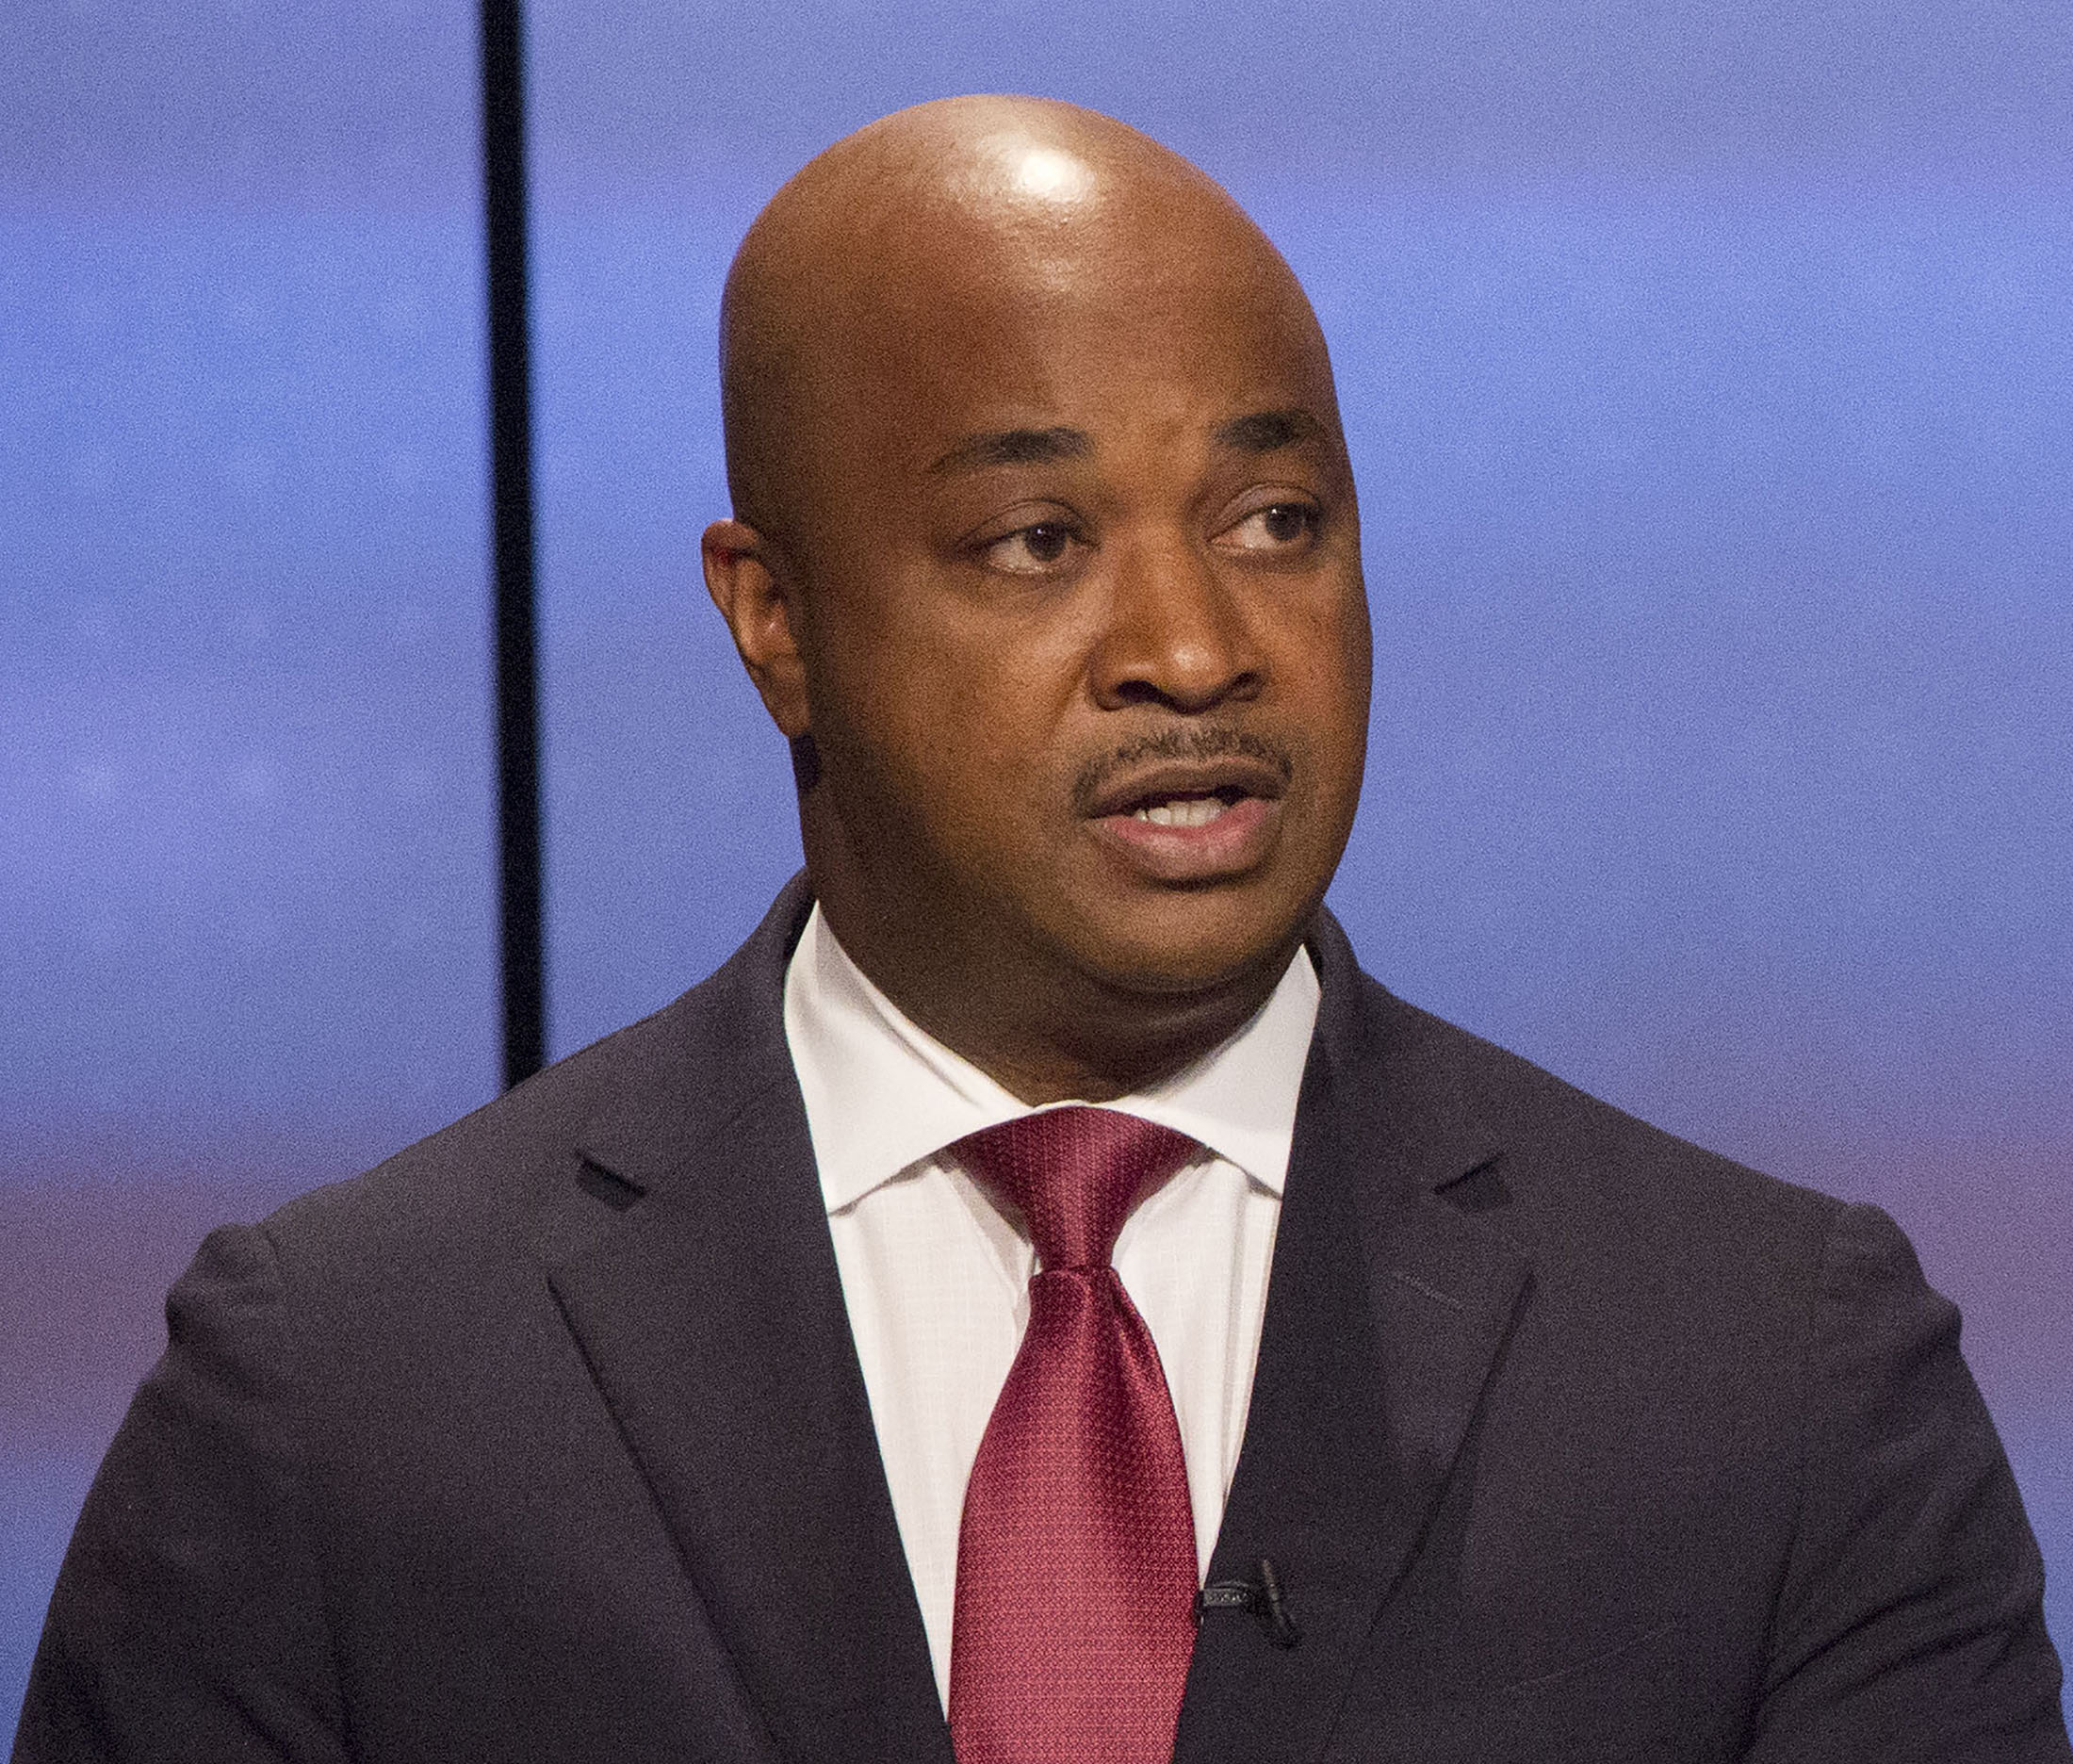 Kwanza Hall wins special election to serve remainder of John Lewis' term in Congress